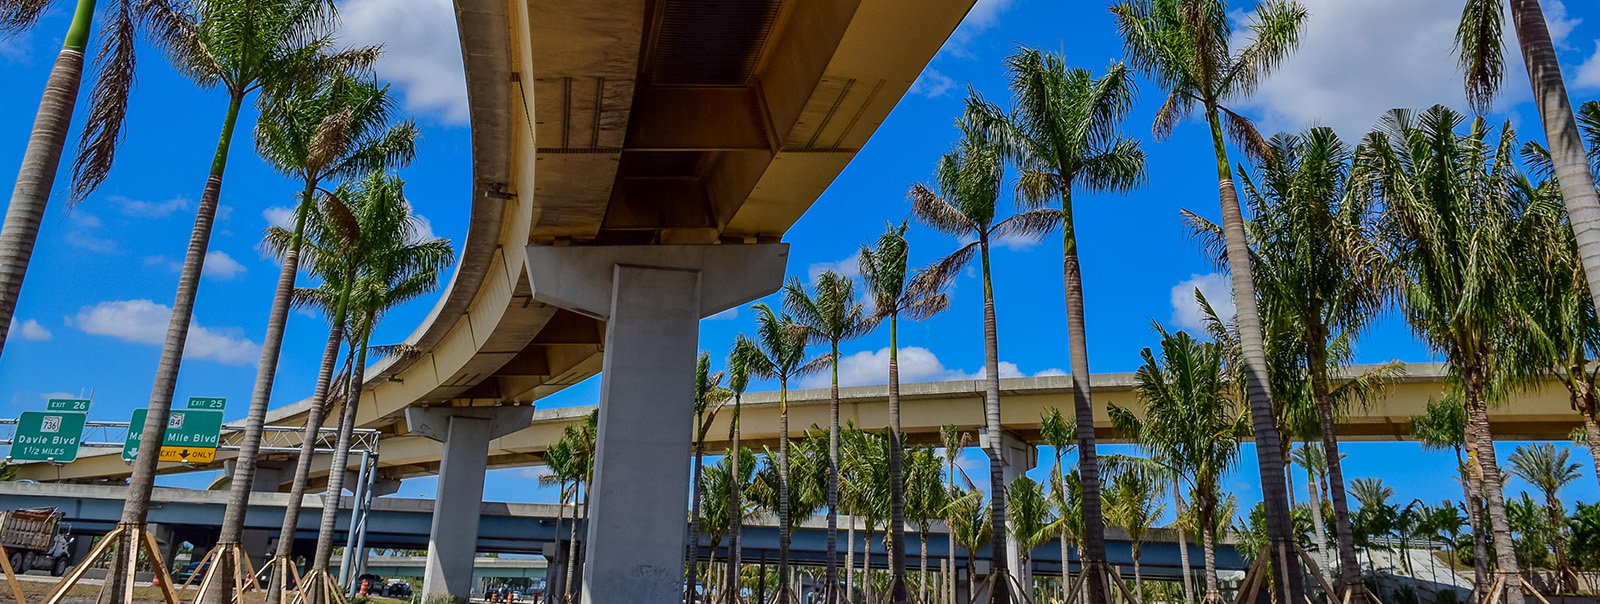 bridge-and-palm-trees